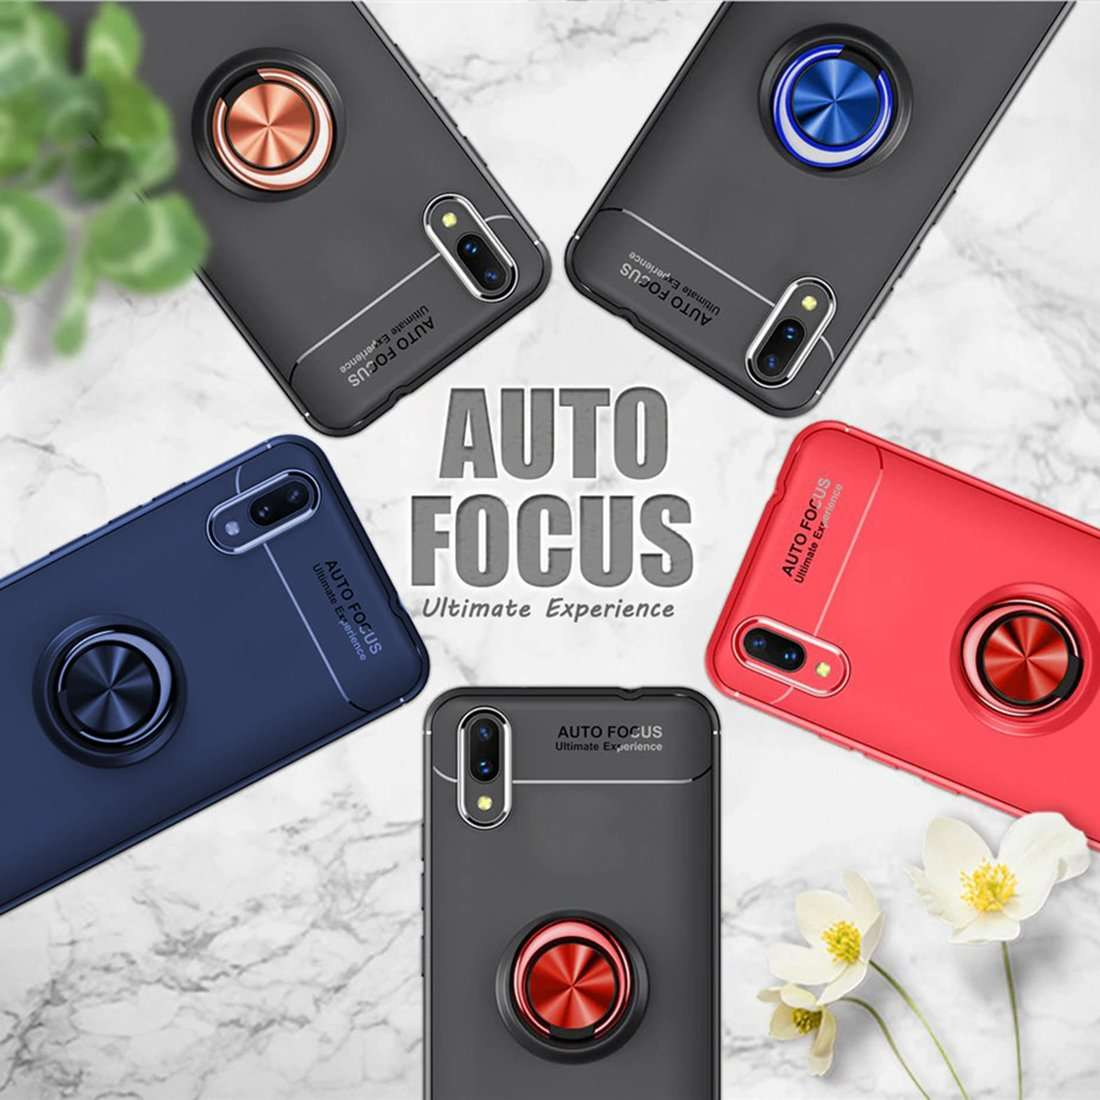 Vivo V11 Pro Finger Ring Magnetic Car Holder Silicone Case 2018 Soft Tpu Leather Oppo F7 Auto Focus Oplore Indias Best Quality Mobile Accessories Store